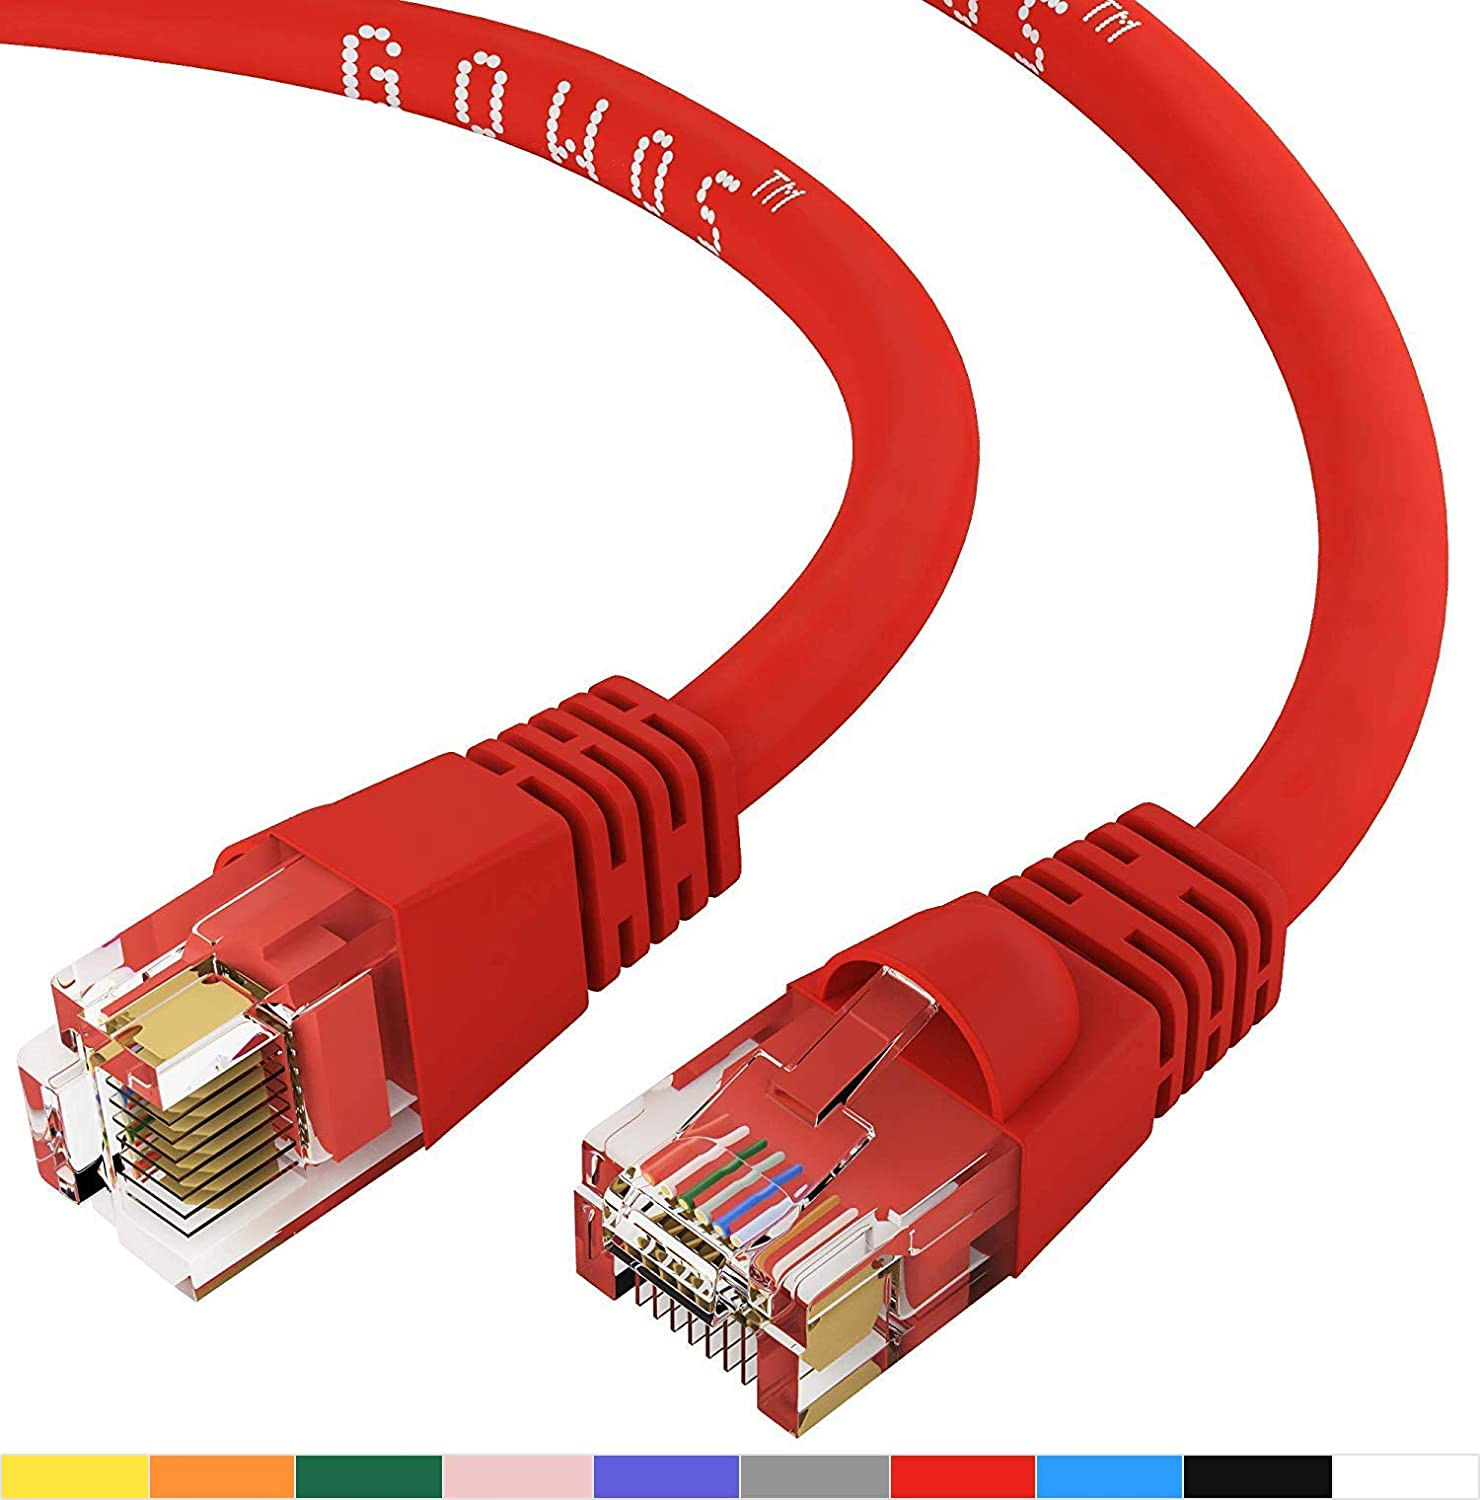 24AWG Network Cable with Gold Plated RJ45 Snagless//Molded//Booted Connector 550MHz 10 Gigabit//Sec High Speed LAN Internet//Patch Cable Black GOWOS Cat6 Ethernet Cable 10-Pack - 12 FT